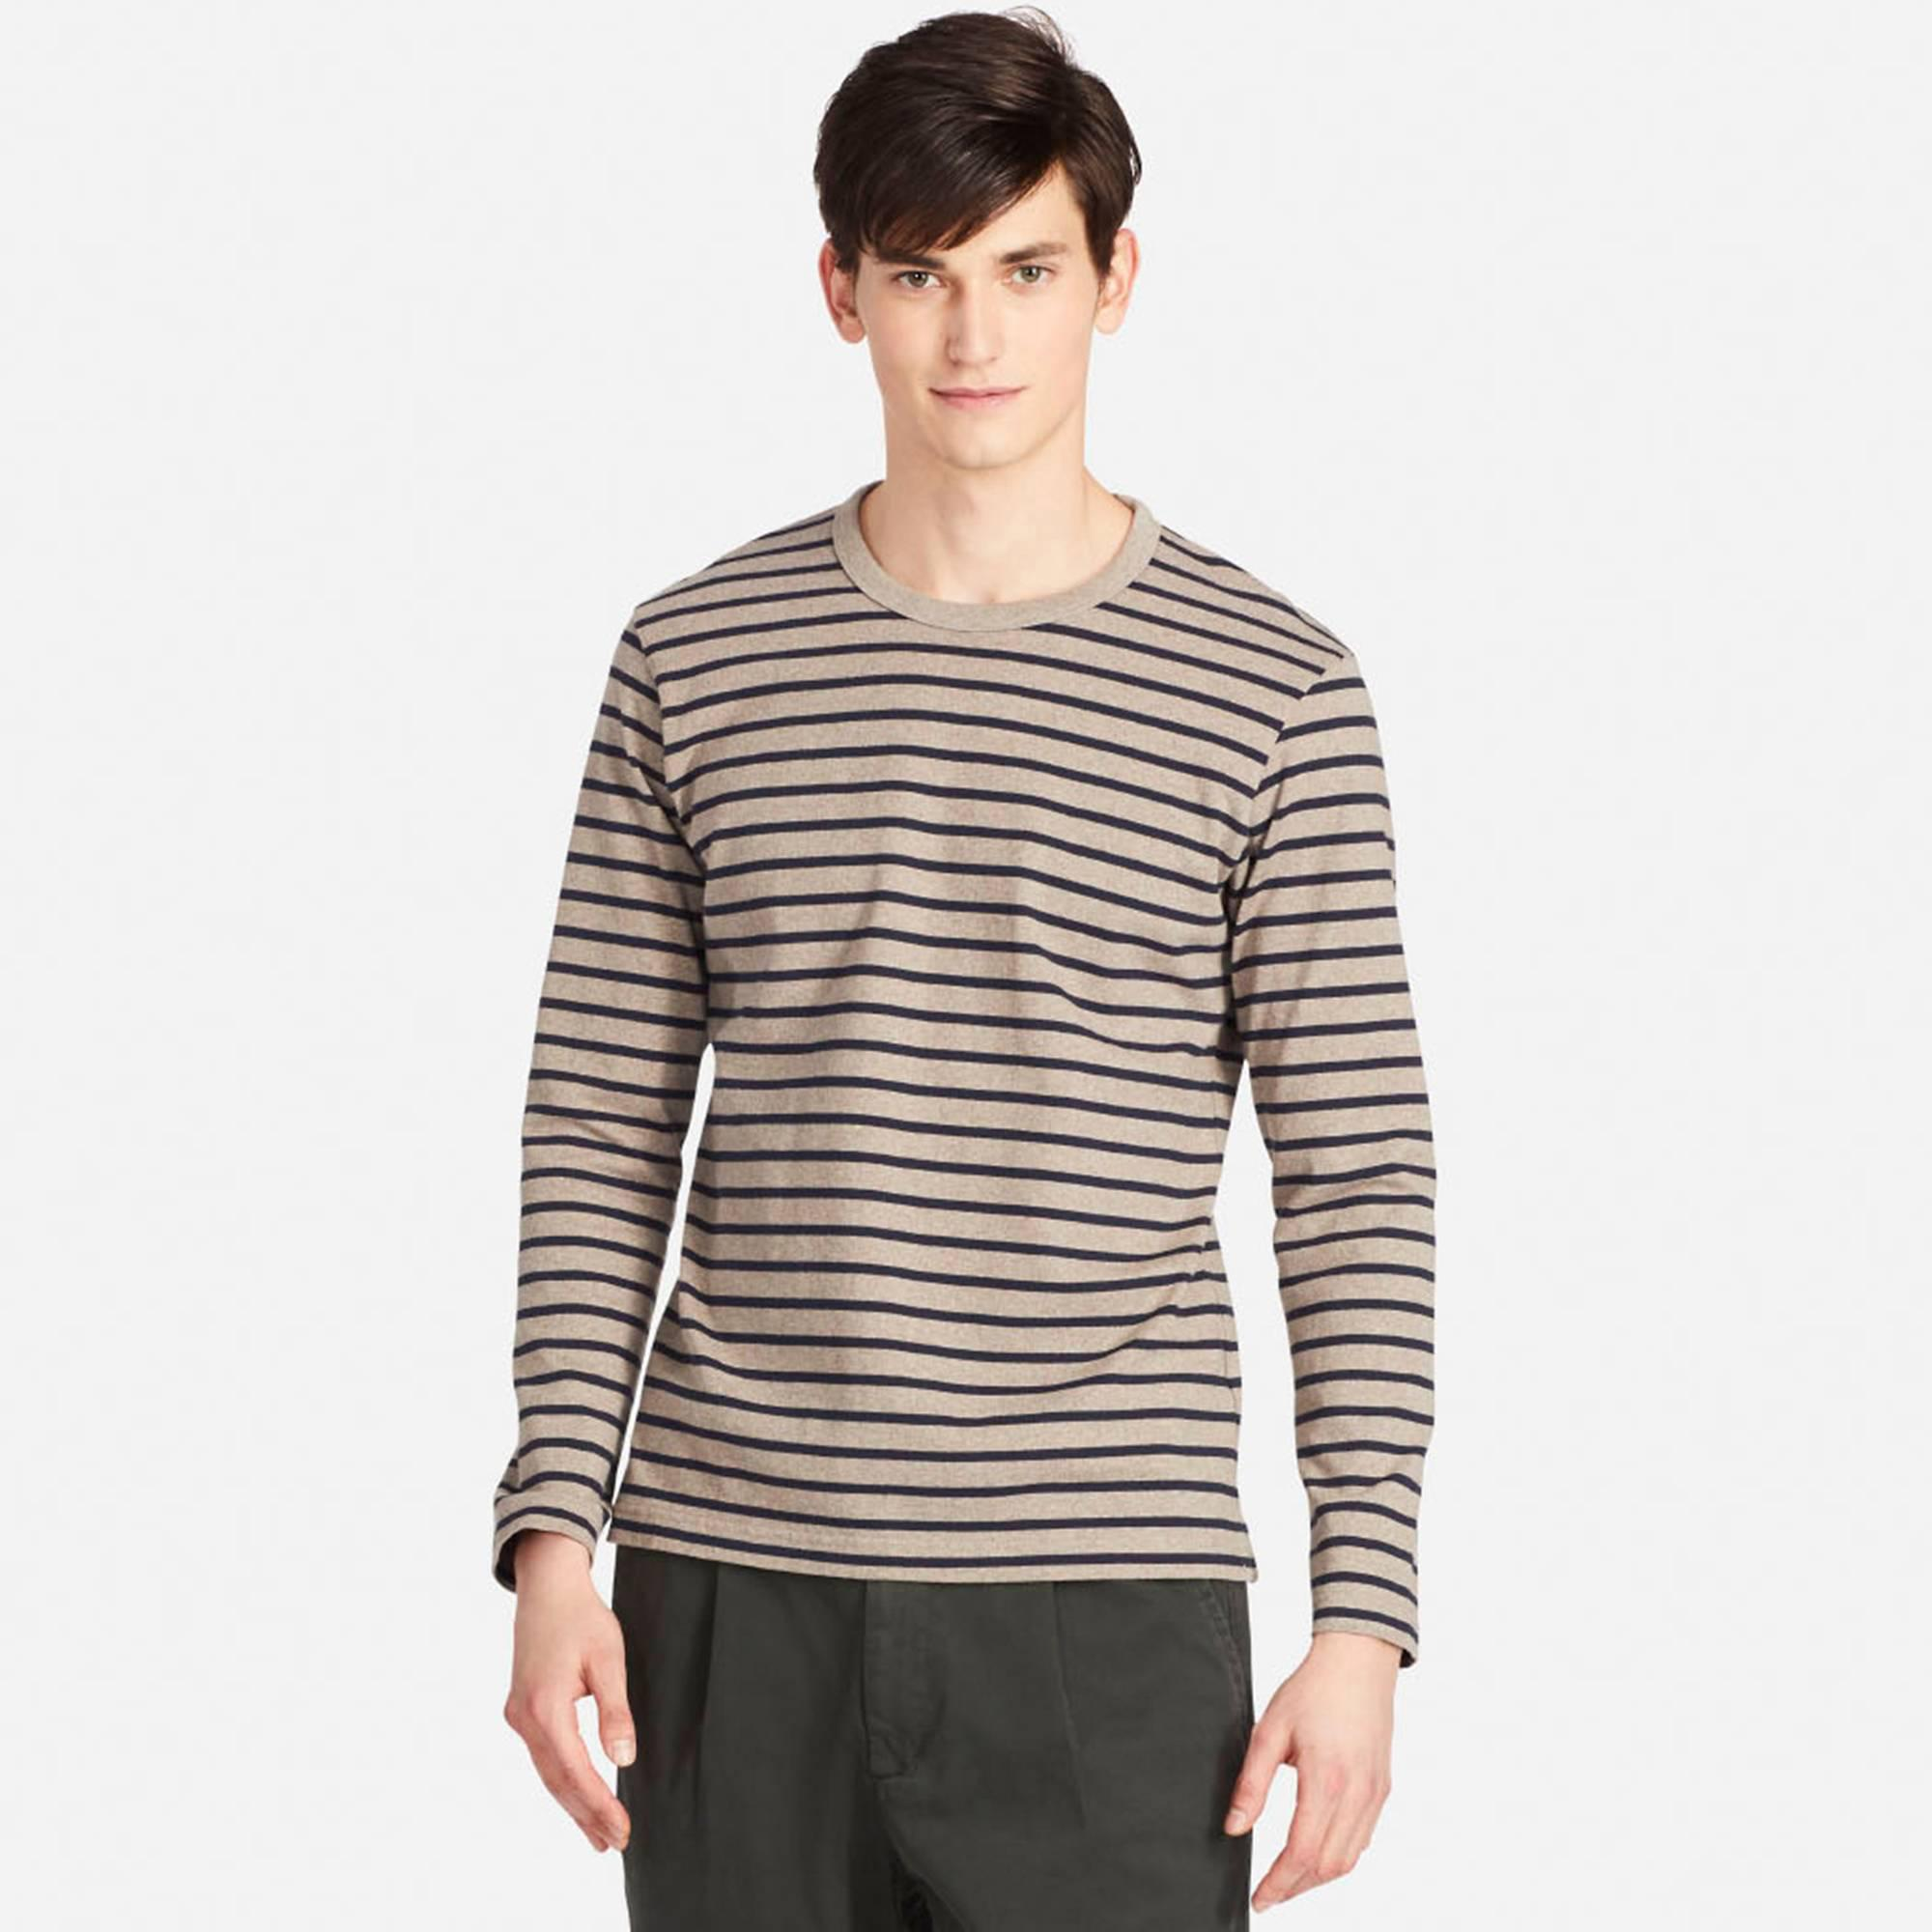 cfde2e656e Uniqlo Men Washed Striped Crew Neck Short-sleeve T-shirt in Brown ...